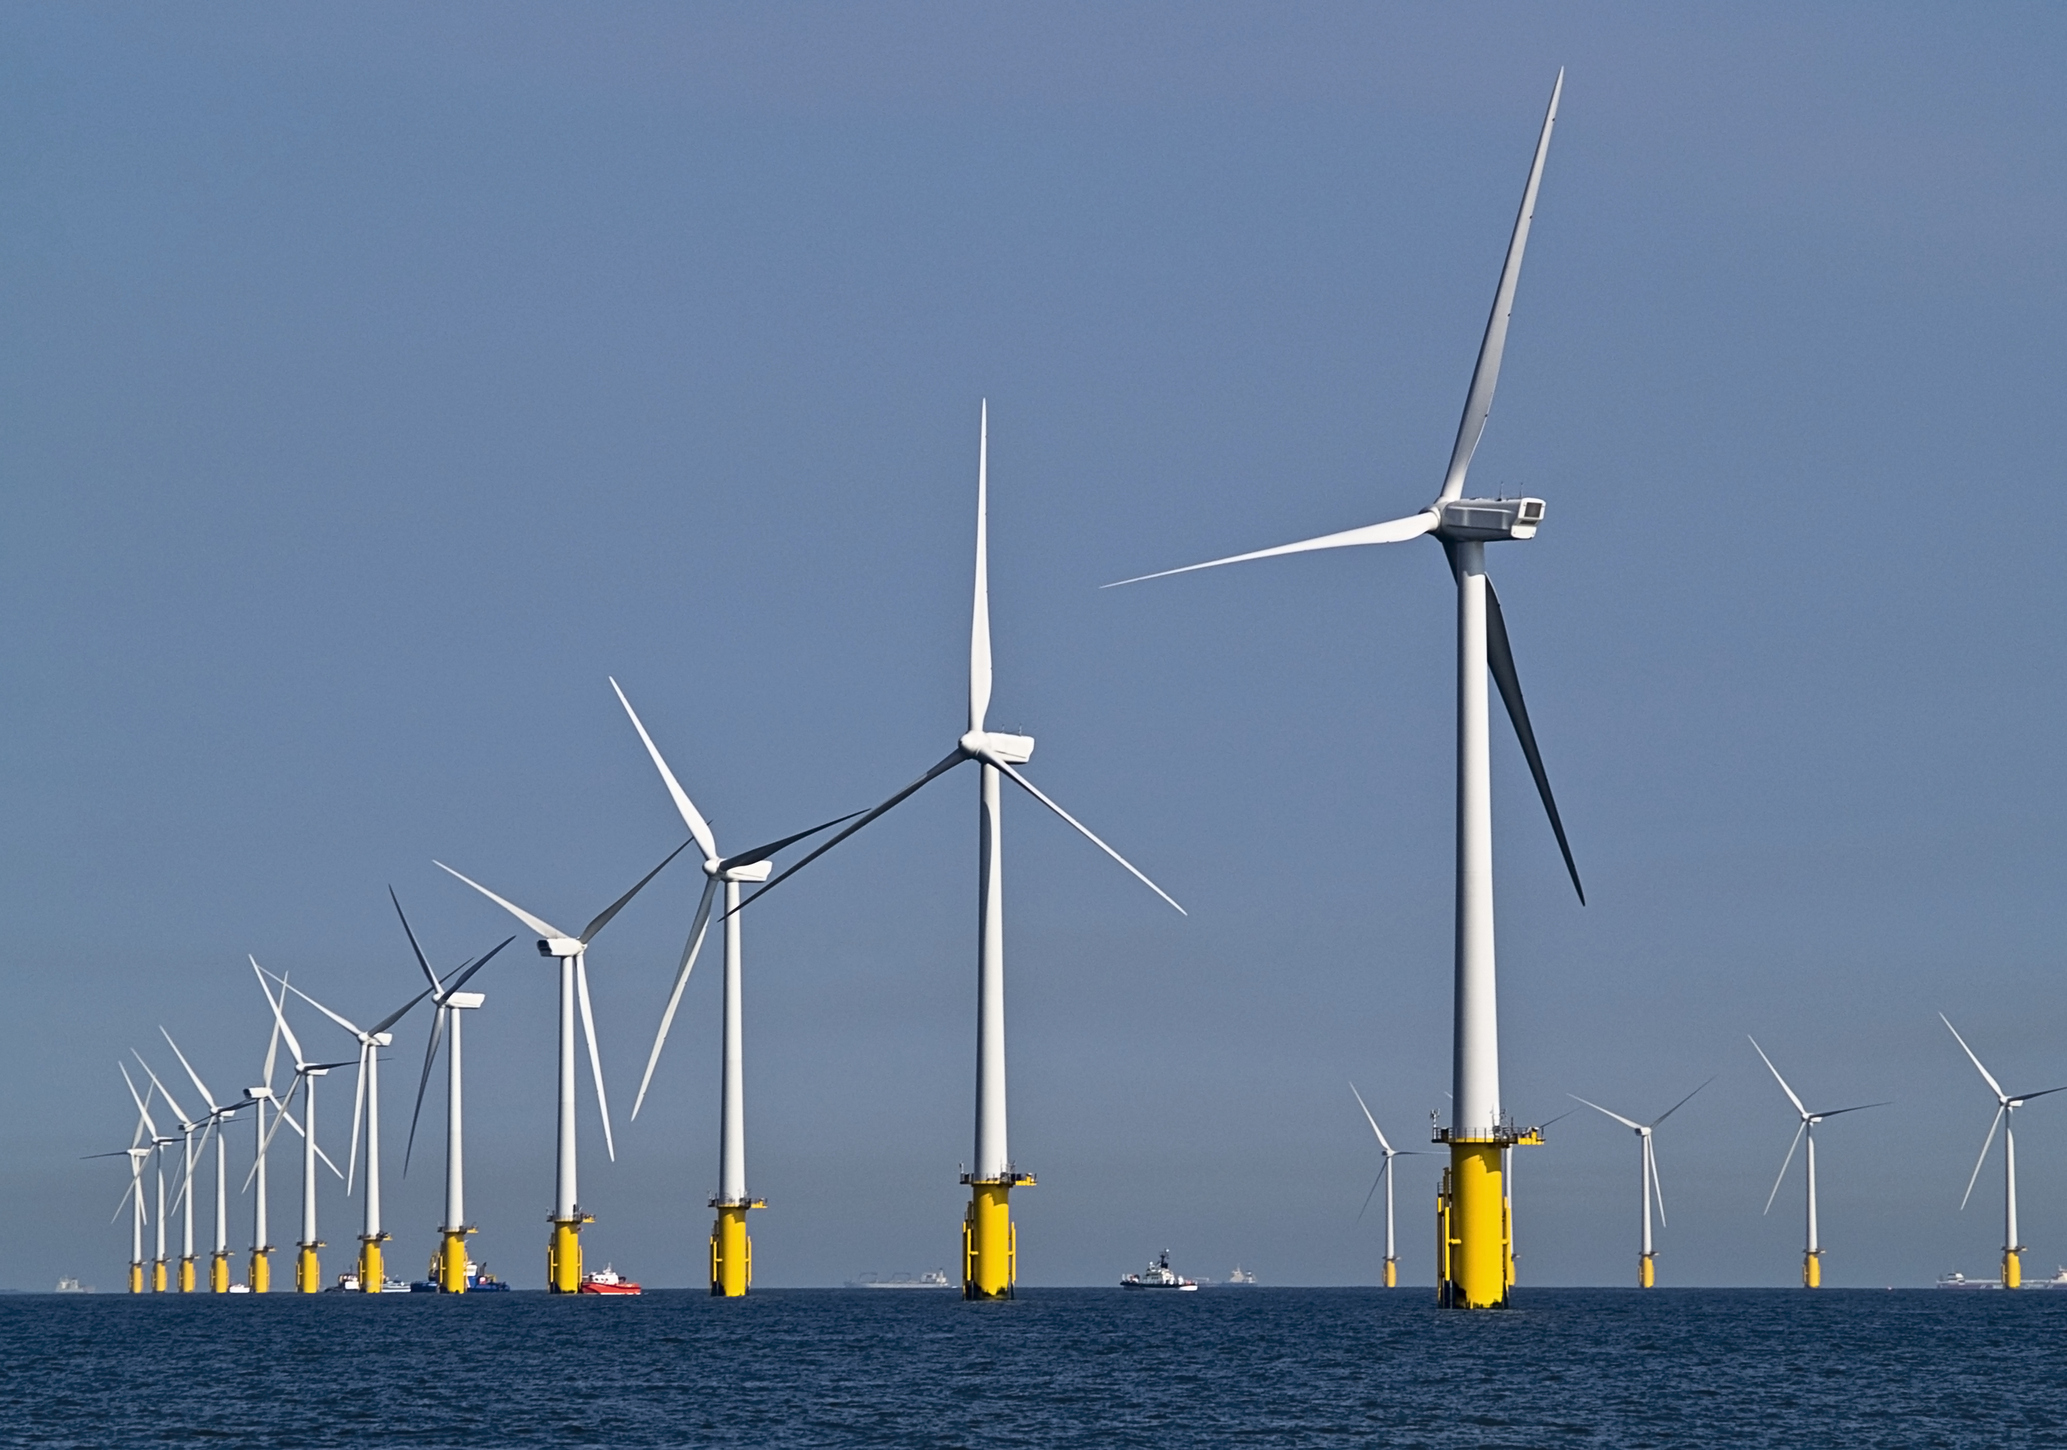 Offshore wind farm UK in southern North Sea.